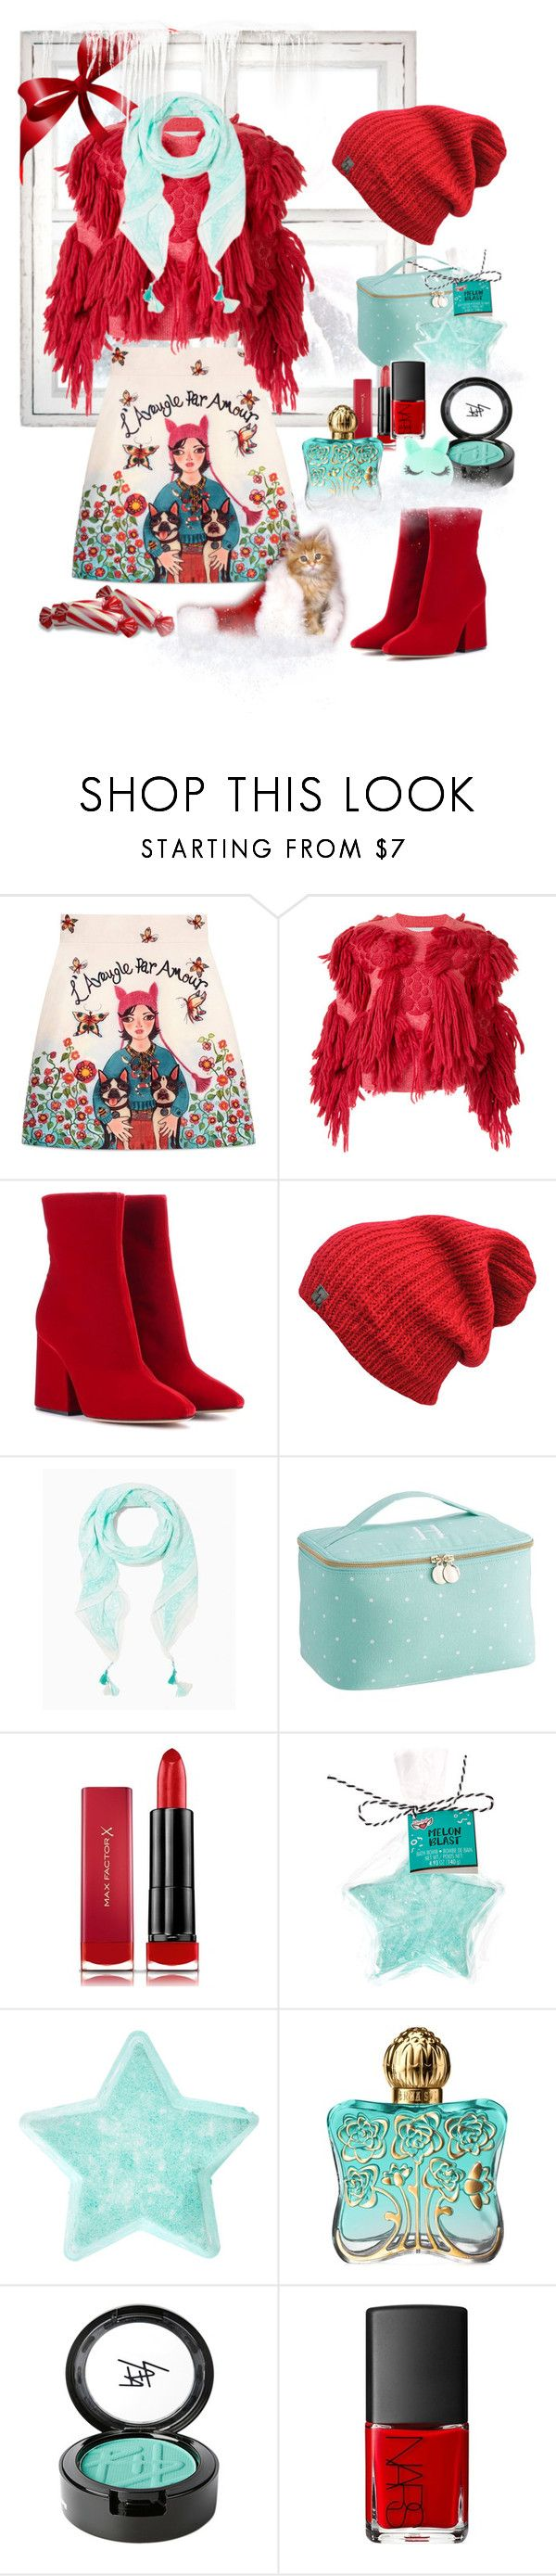 """""""stunning skirt"""" by jaja8x8 ❤ liked on Polyvore featuring Gucci, writtenafterwards, Maison Margiela, PBteen, Max Factor, Anna Sui, Beauty Is Life and NARS Cosmetics"""